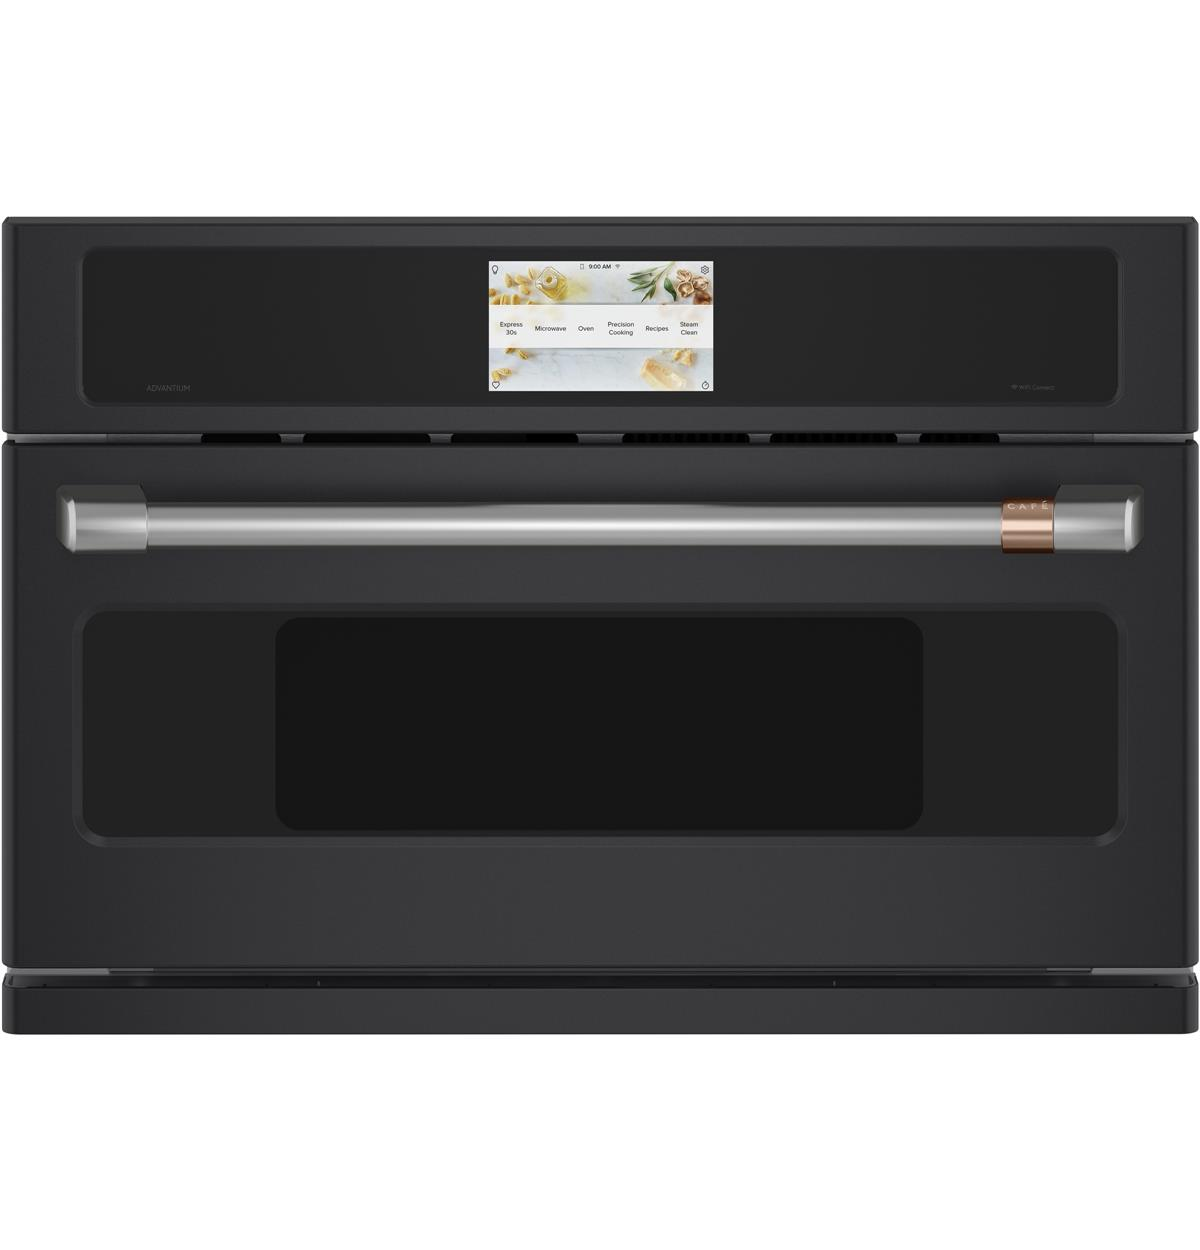 "Cafe™ 30"" Five in One Oven with 120V Advantium® Technology"